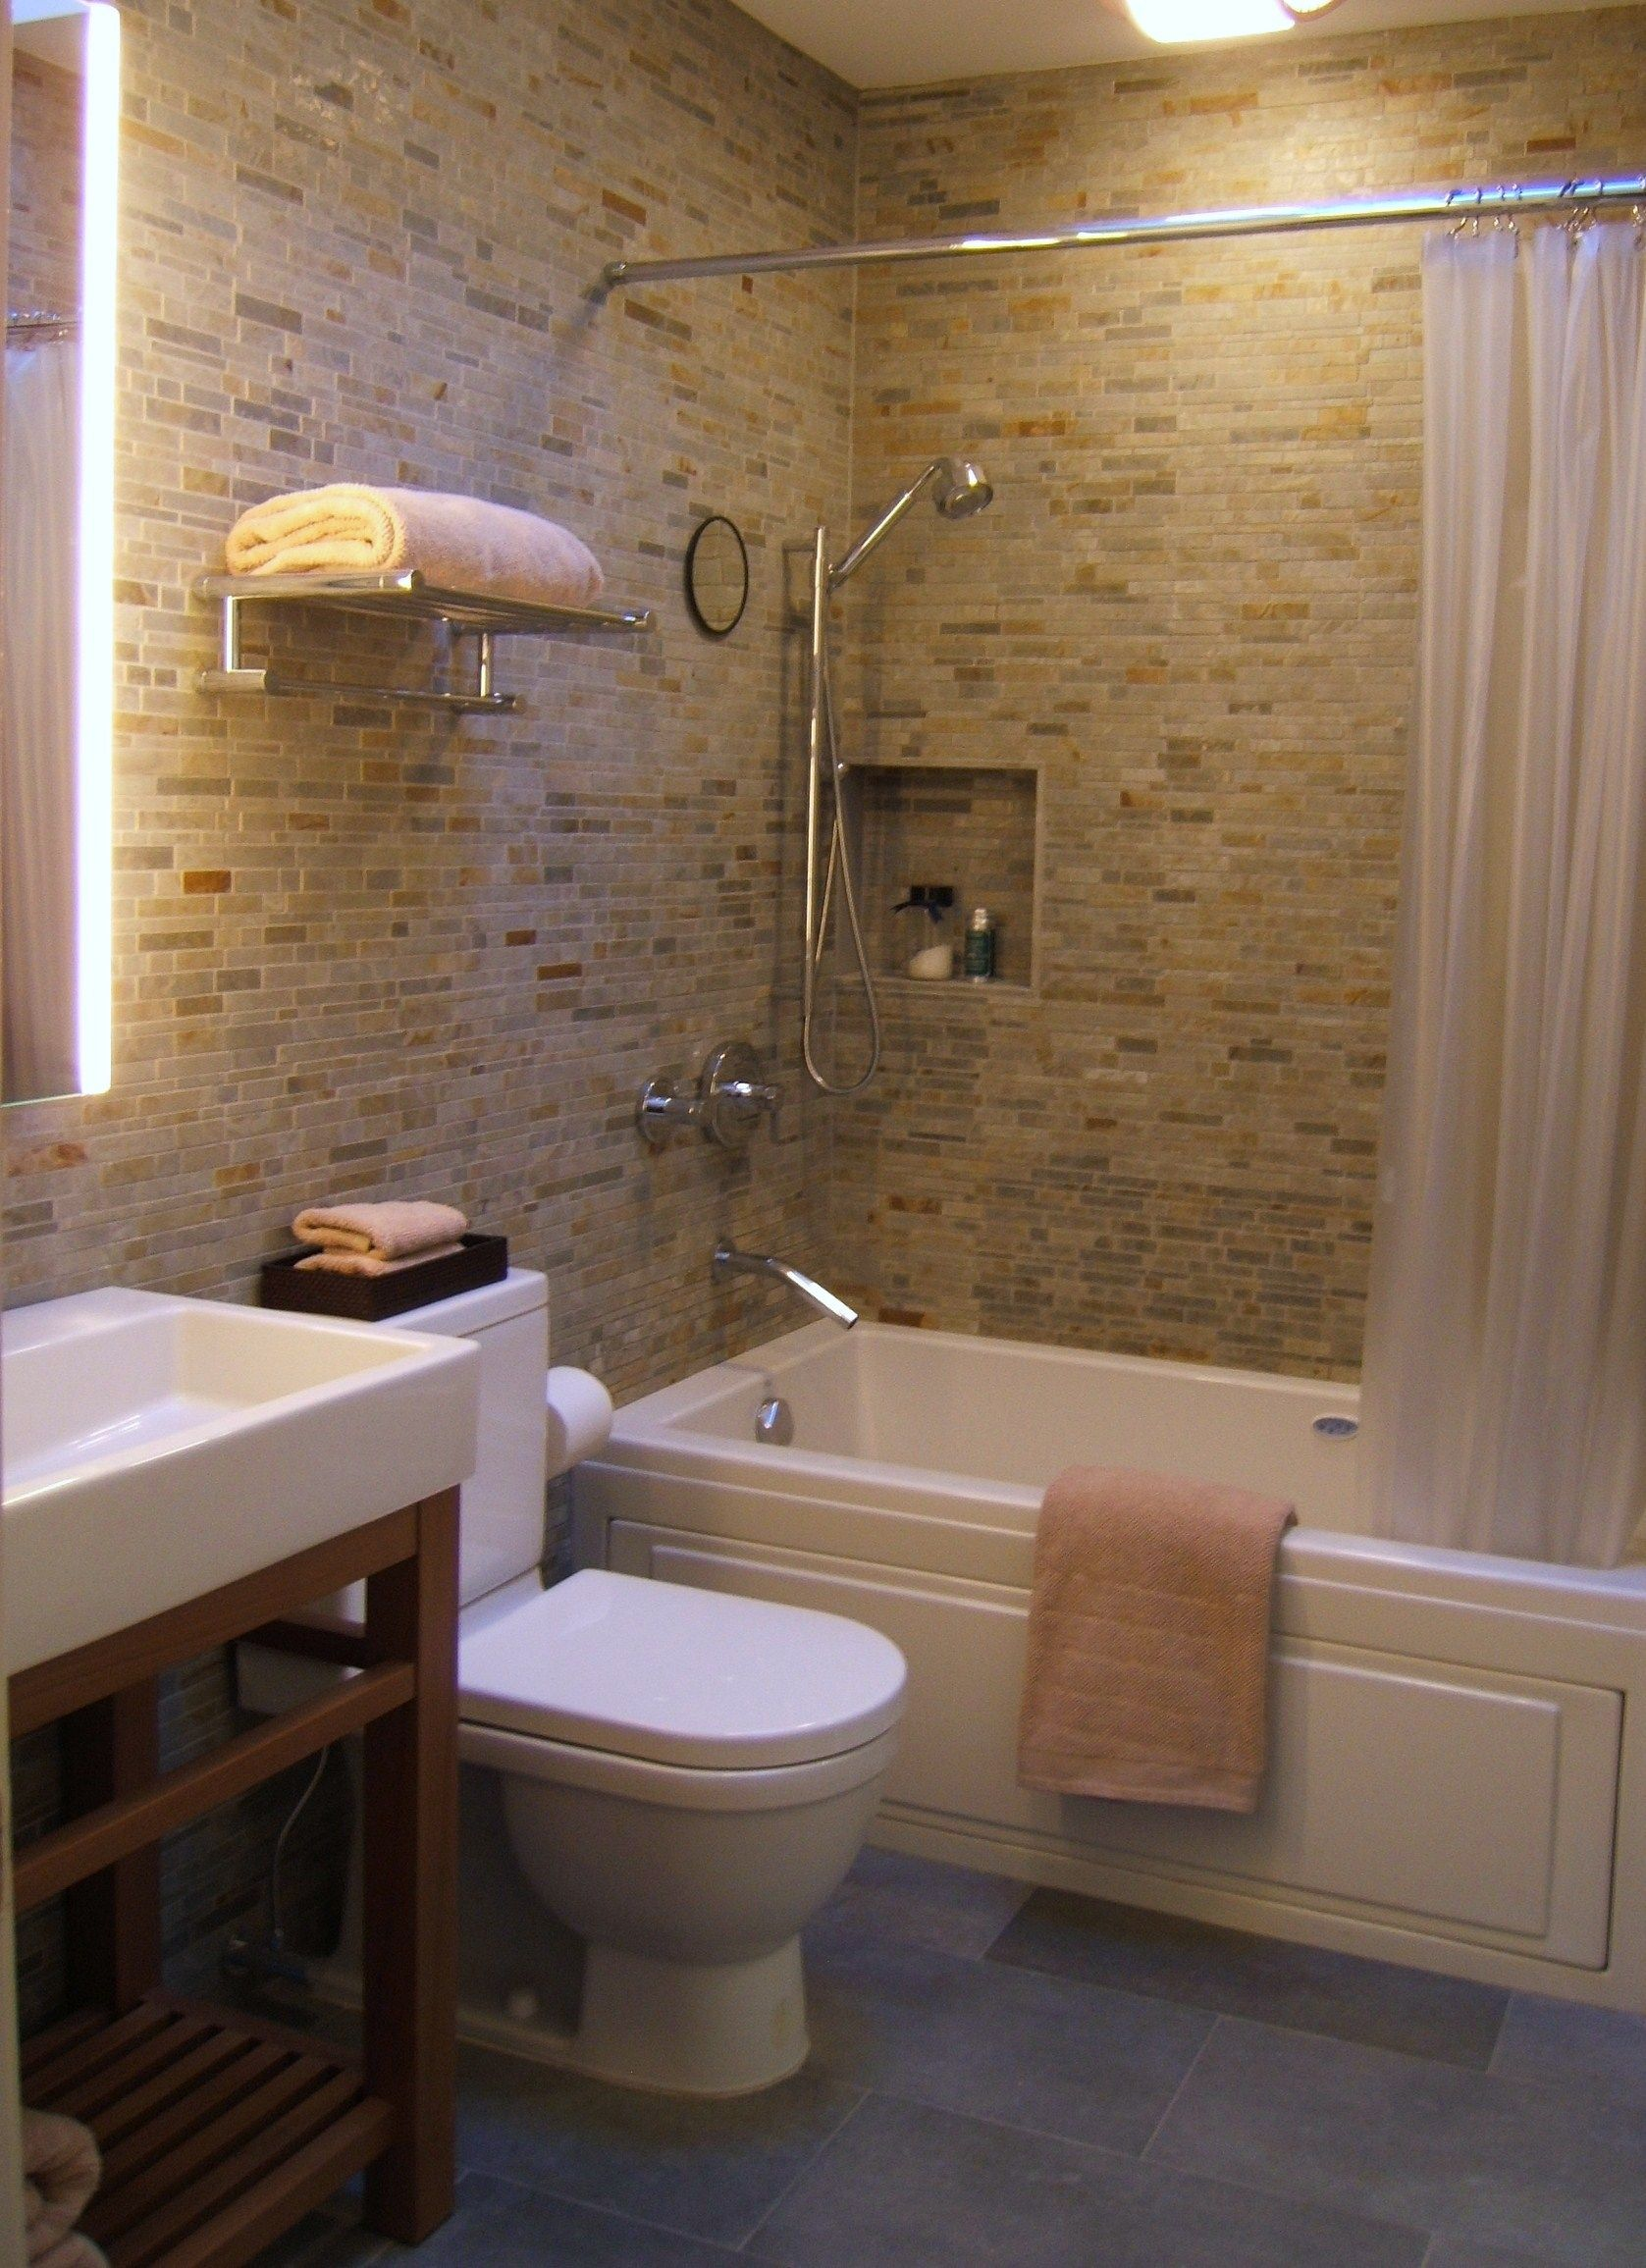 Small bathroom designs south africa small bath Small house bathroom design